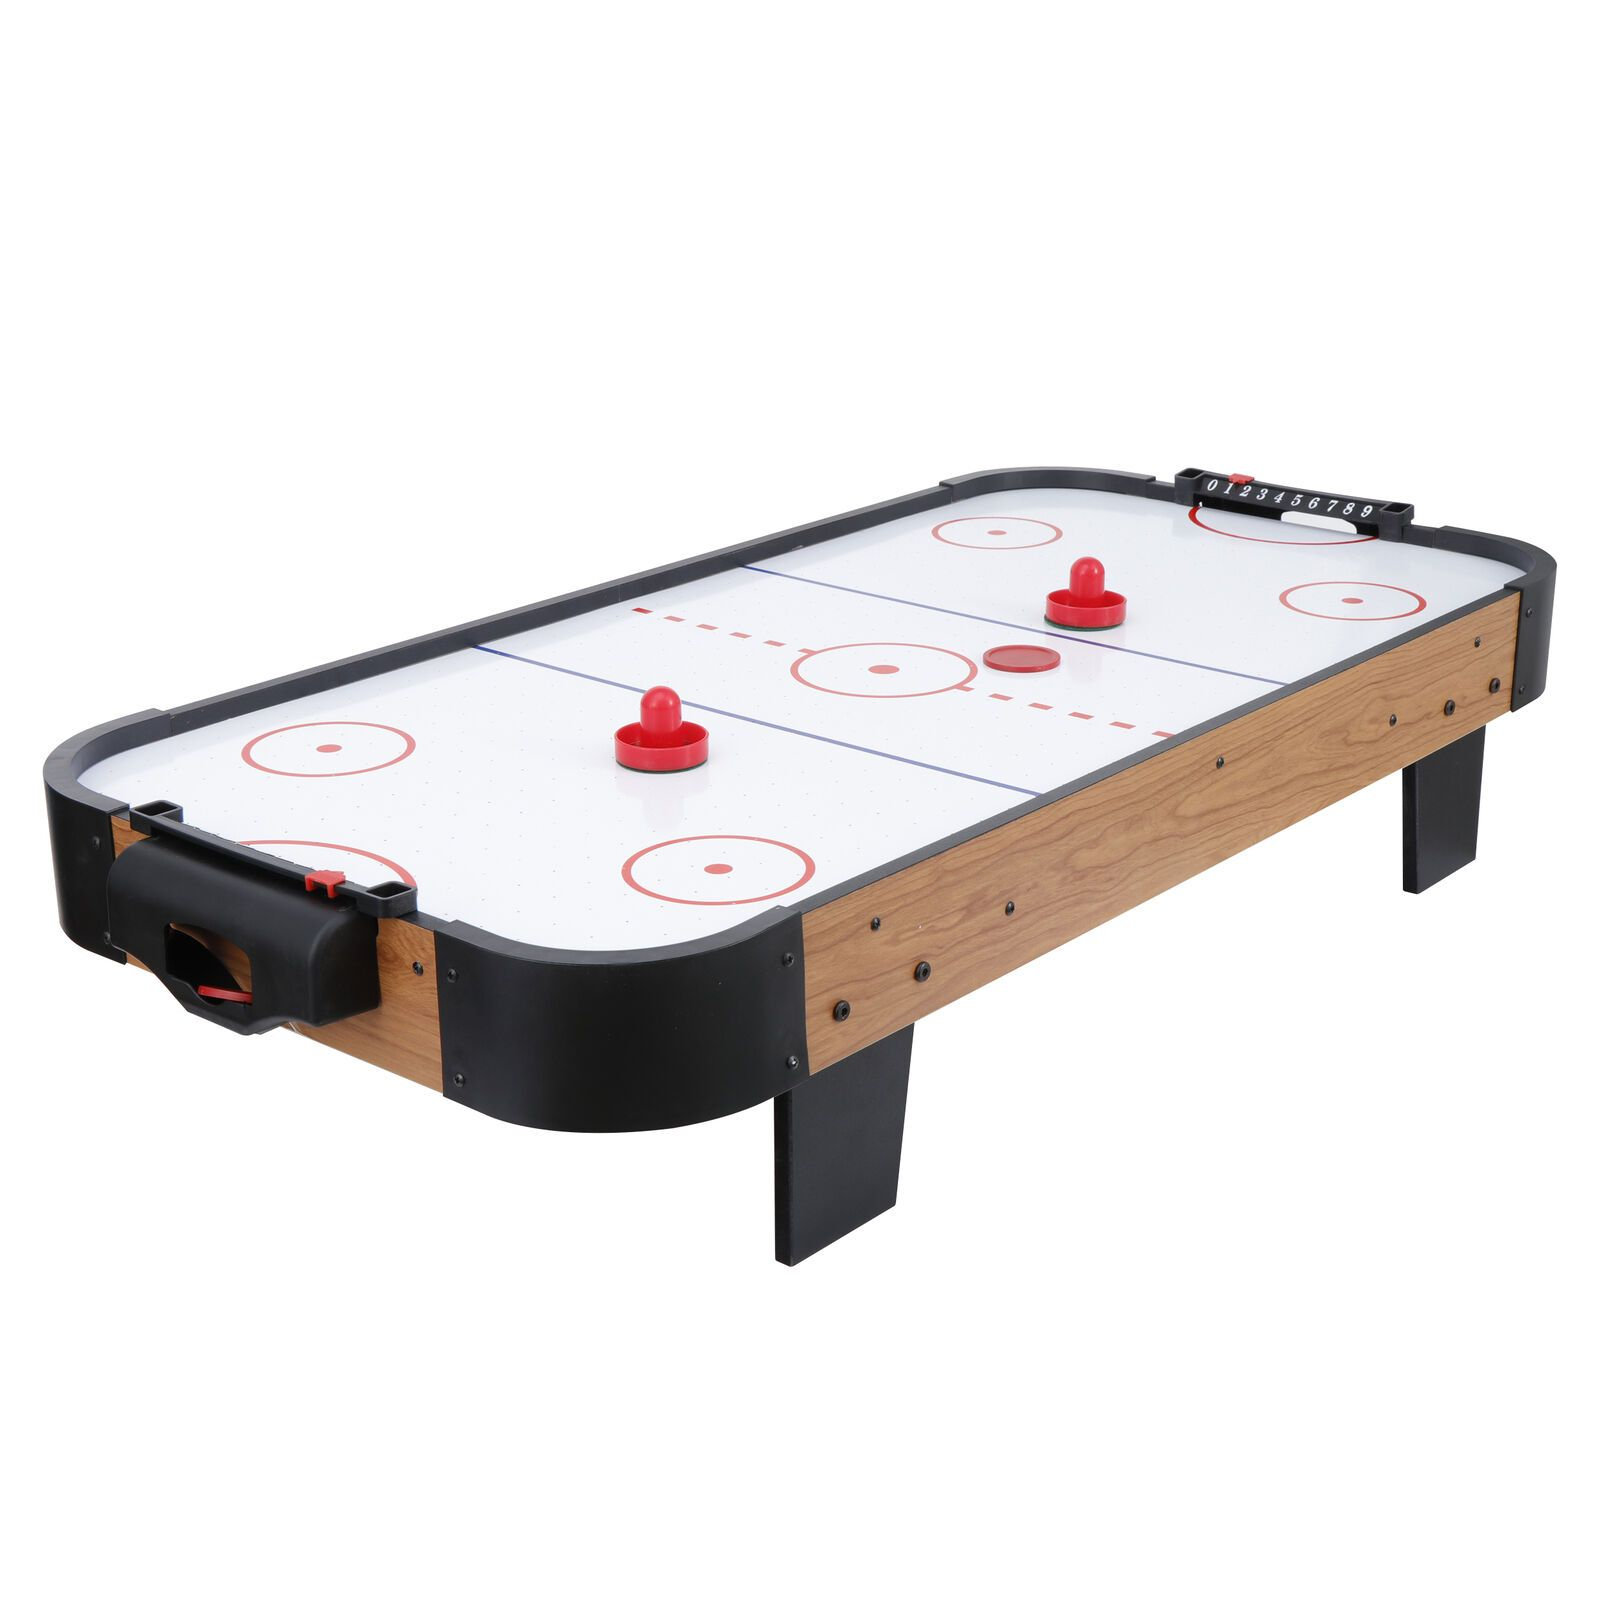 Air Hockey Table Fun Table Top Game For Kids Durableteens Adults Game Gifts 636339512459 Ebay In 2020 Top Games For Kids Air Hockey Table Air Hockey